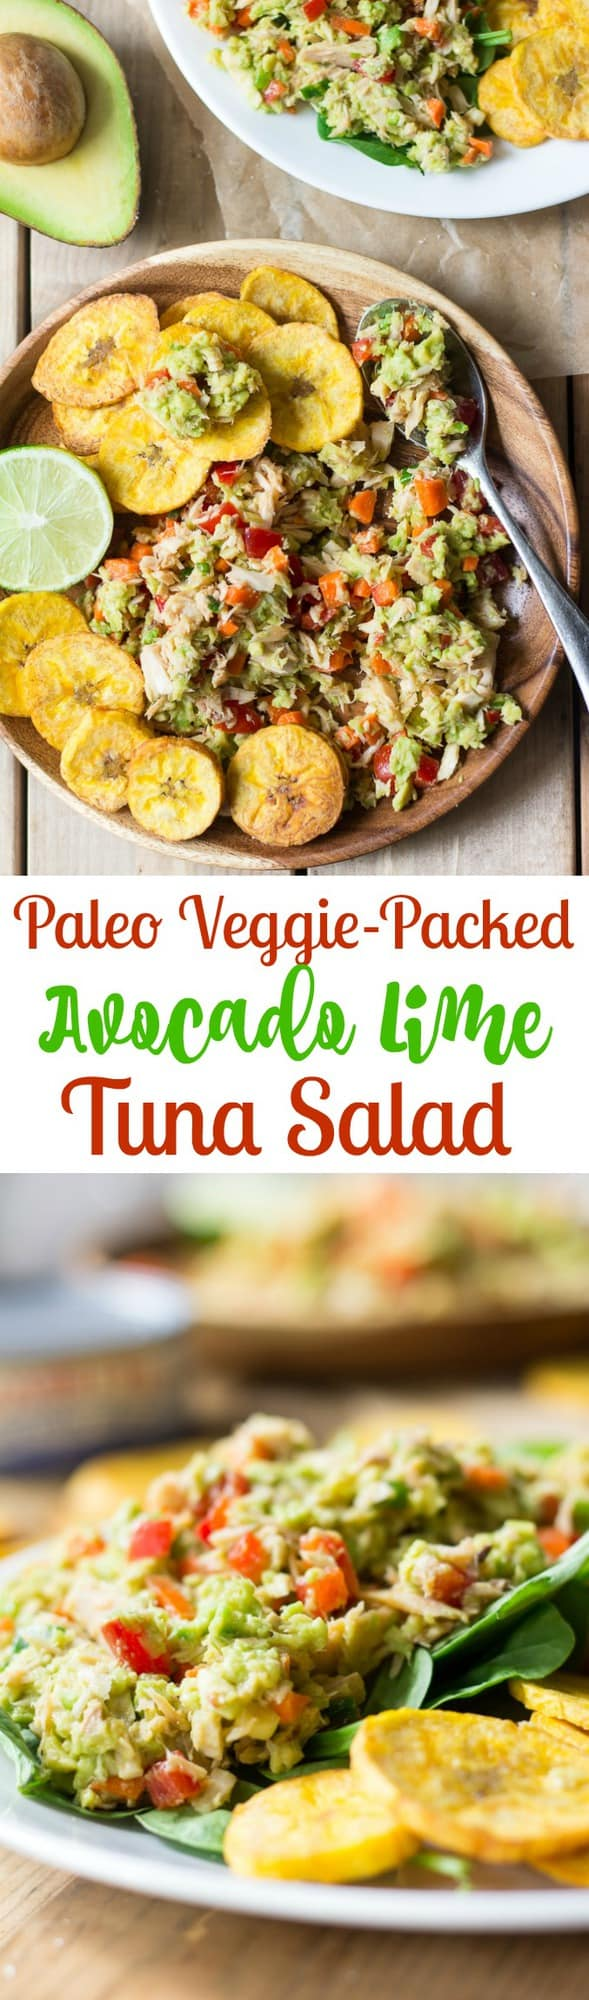 Paleo Veggie Packed Avocado Lime Tuna Salad with plantain chips - Whole30 friendly @bumblebeefoods #onlyalbacore #CG #ad